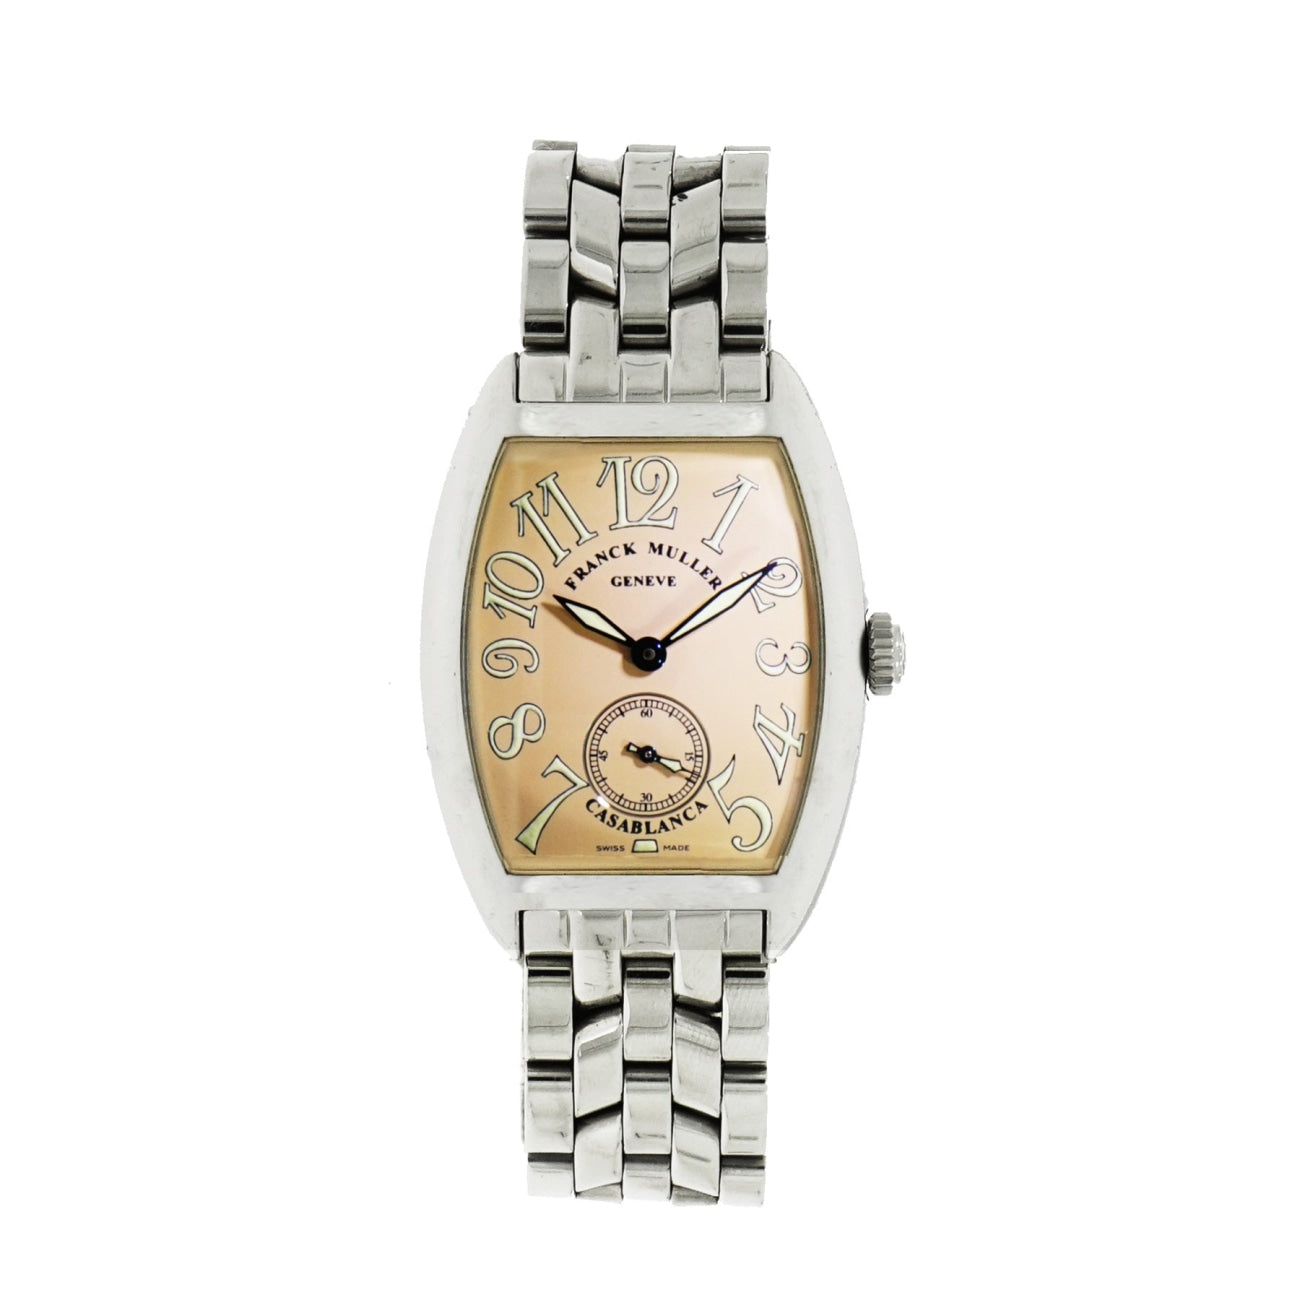 Pre-Owned Franck Muller Watches - Casablanca | Manfredi Jewels